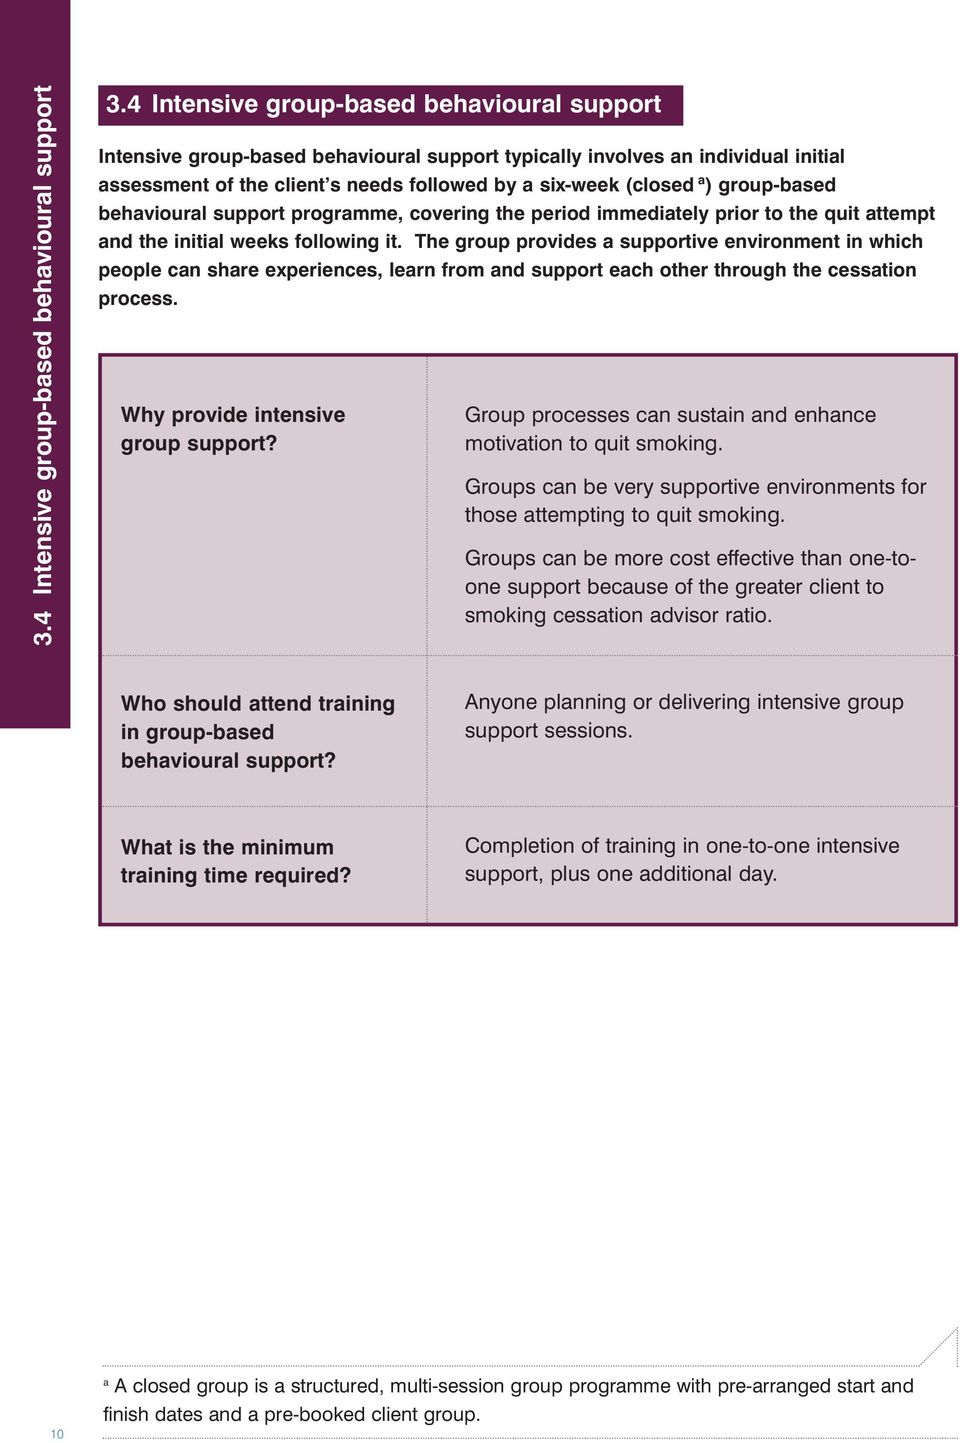 group-based behavioural support programme, covering the period immediately prior to the quit attempt and the initial weeks following it.